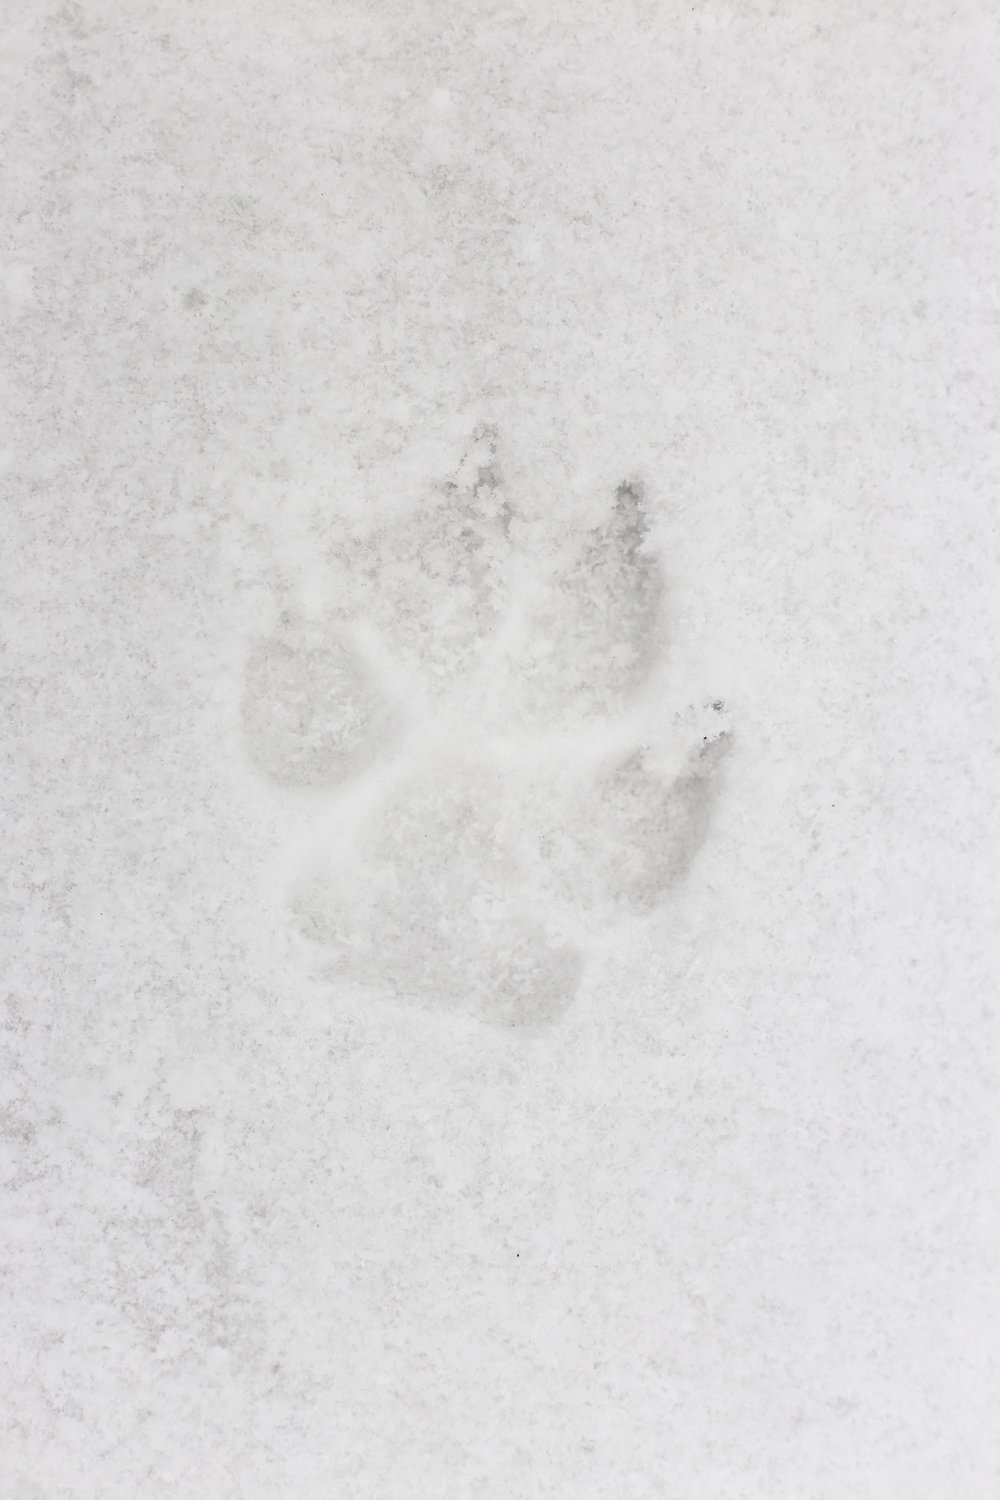 Wolf prints in the snow.